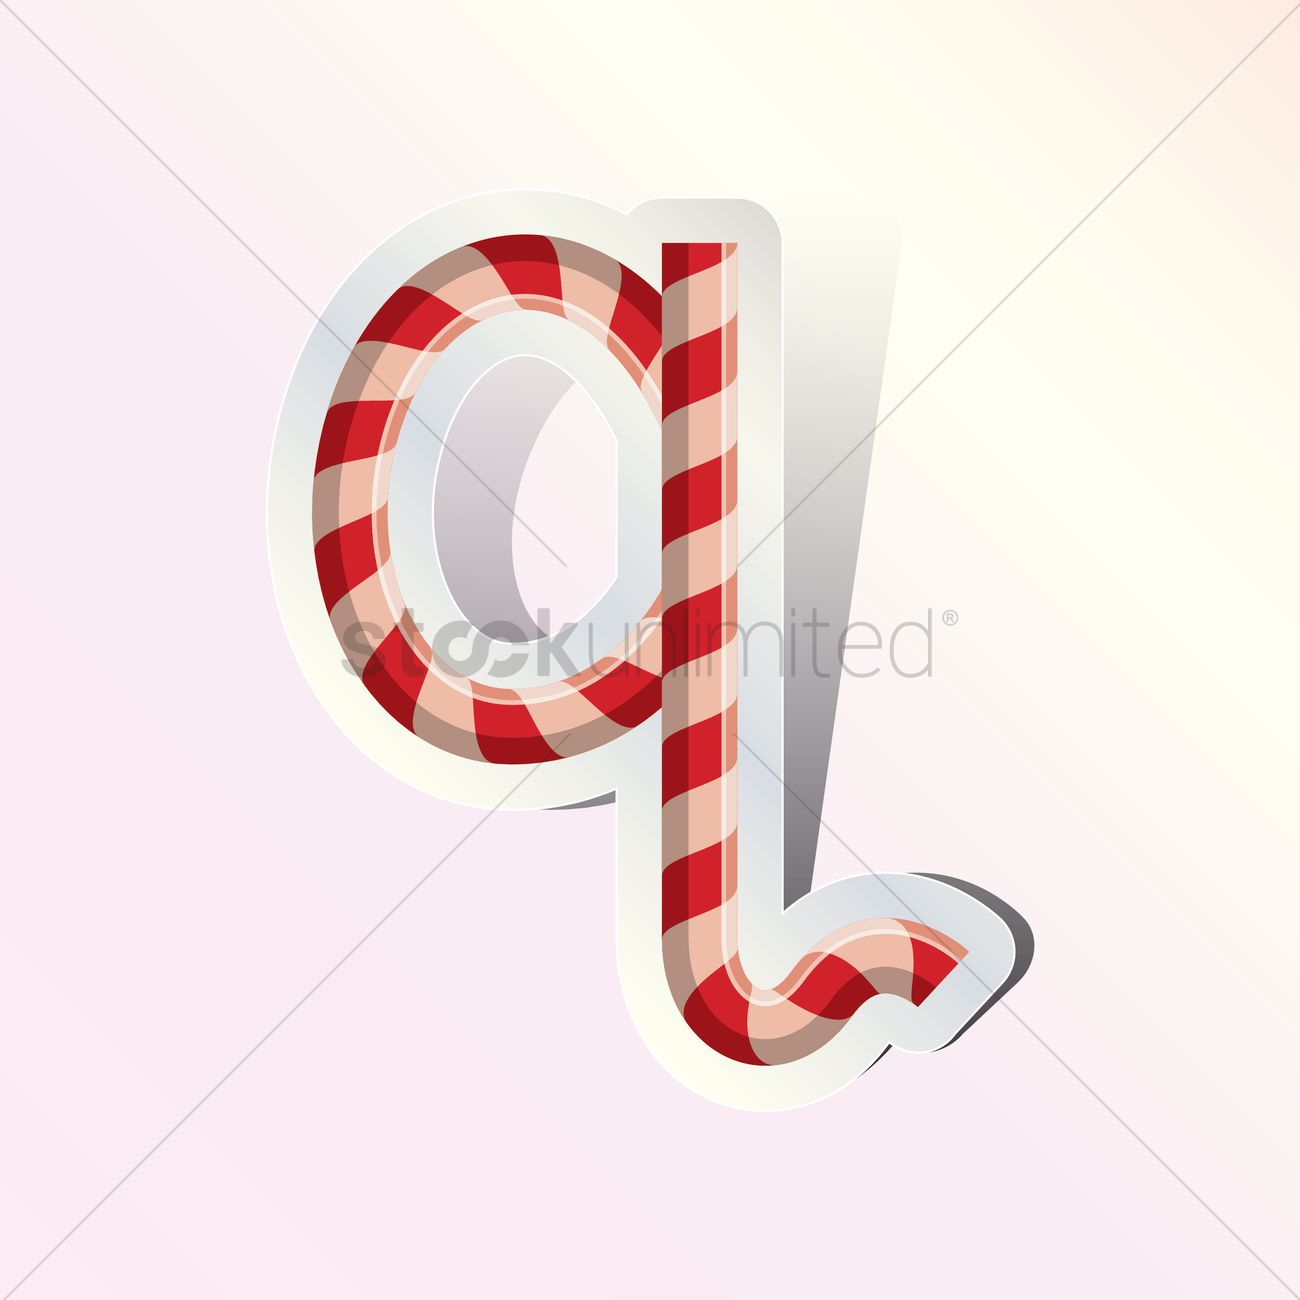 Alphabet Small Letter Q In Candy Cane Design Vector Graphic